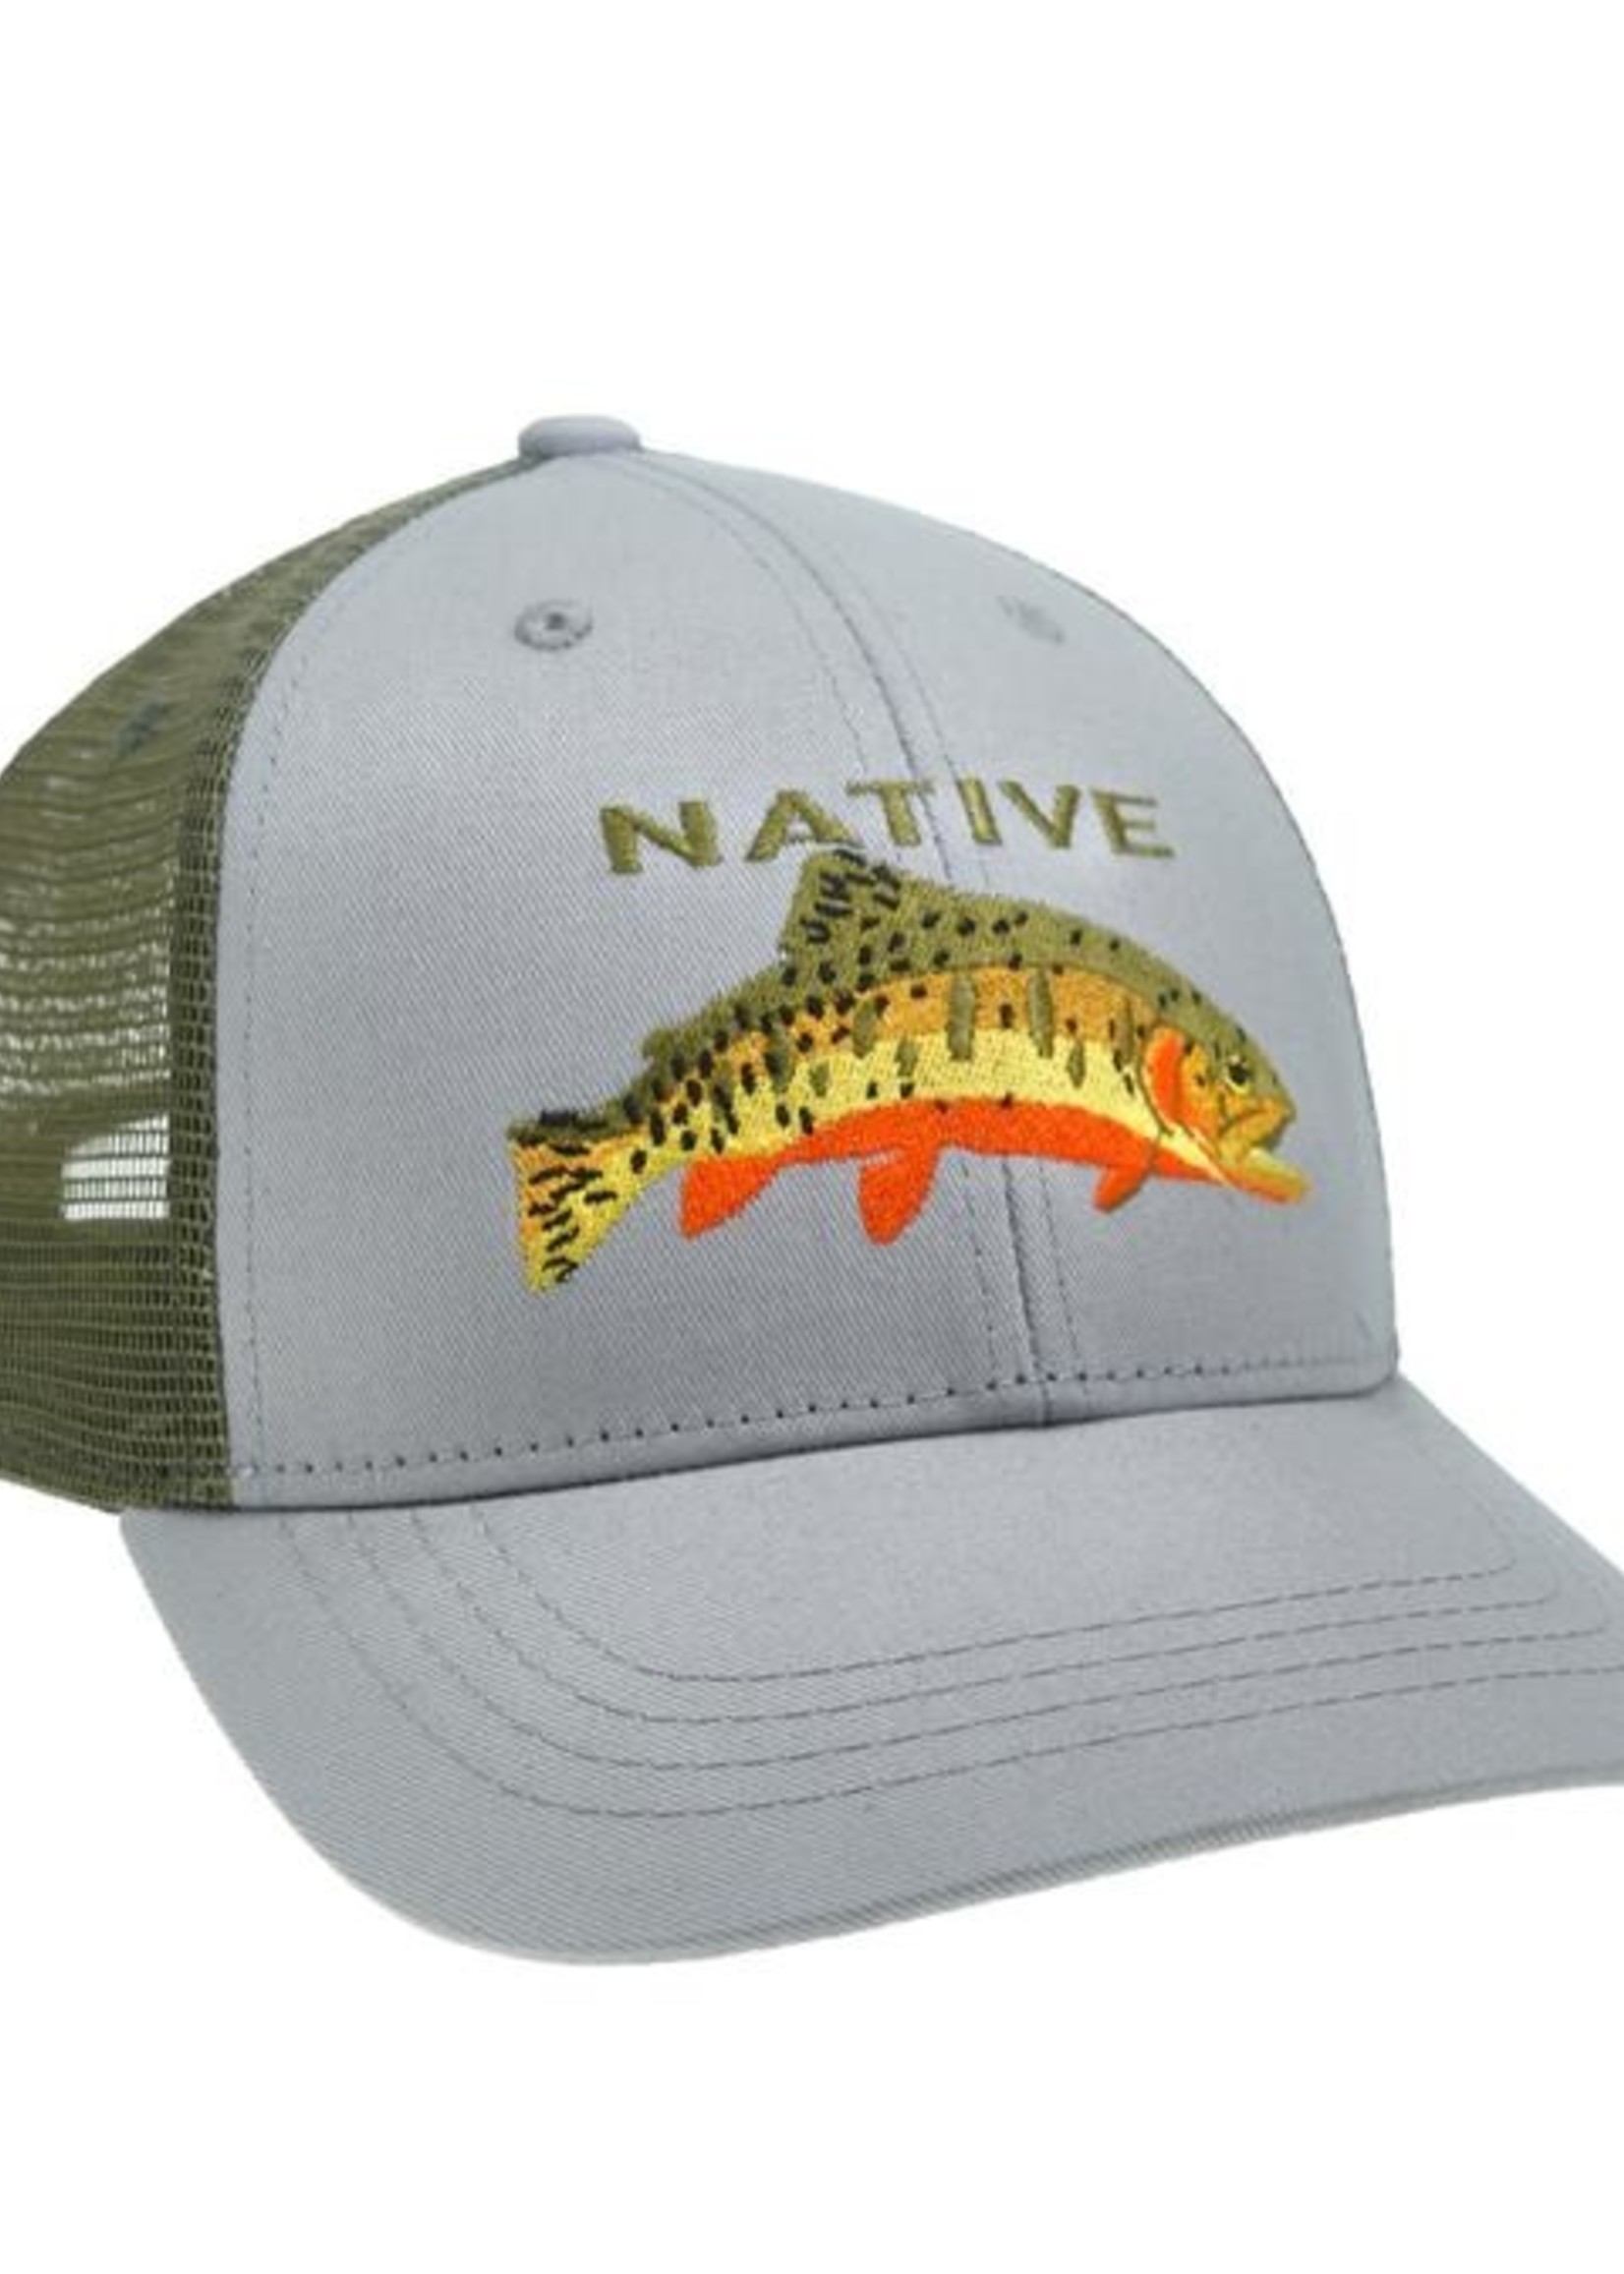 Rep Your Water Colorado Cutthroat Native  Hat